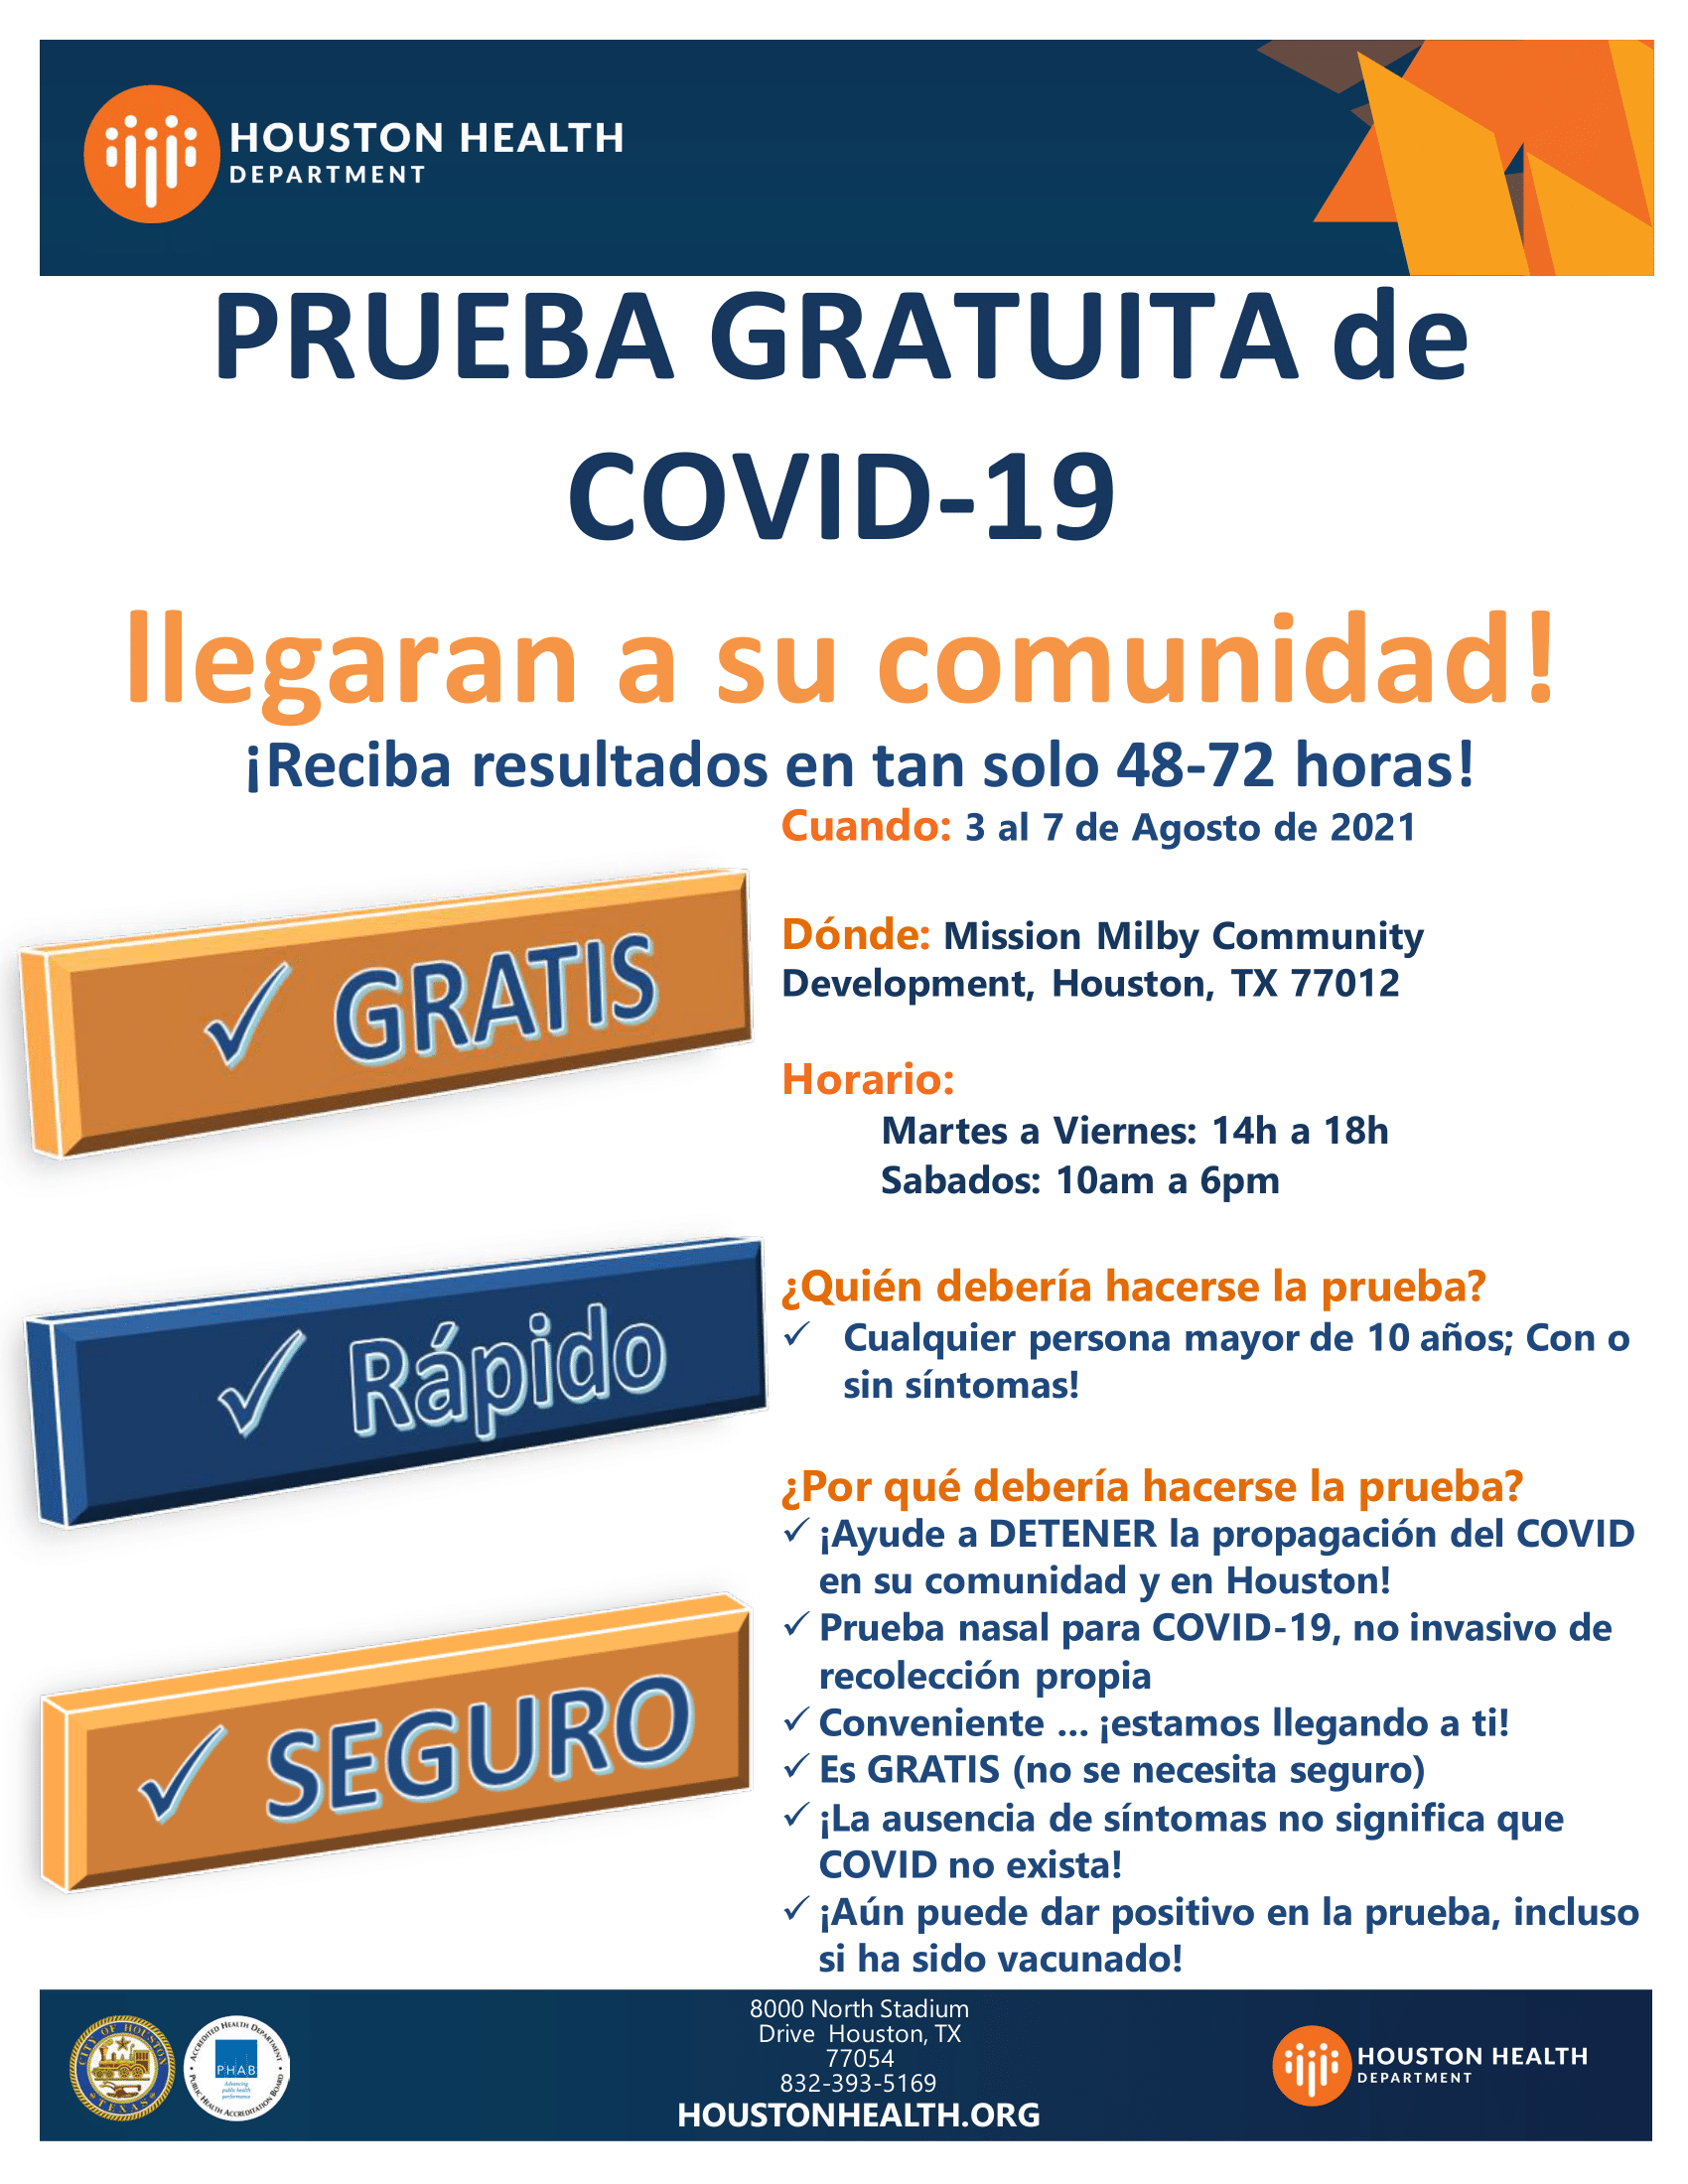 Spanish flyer for 2nd dose of COVID-19